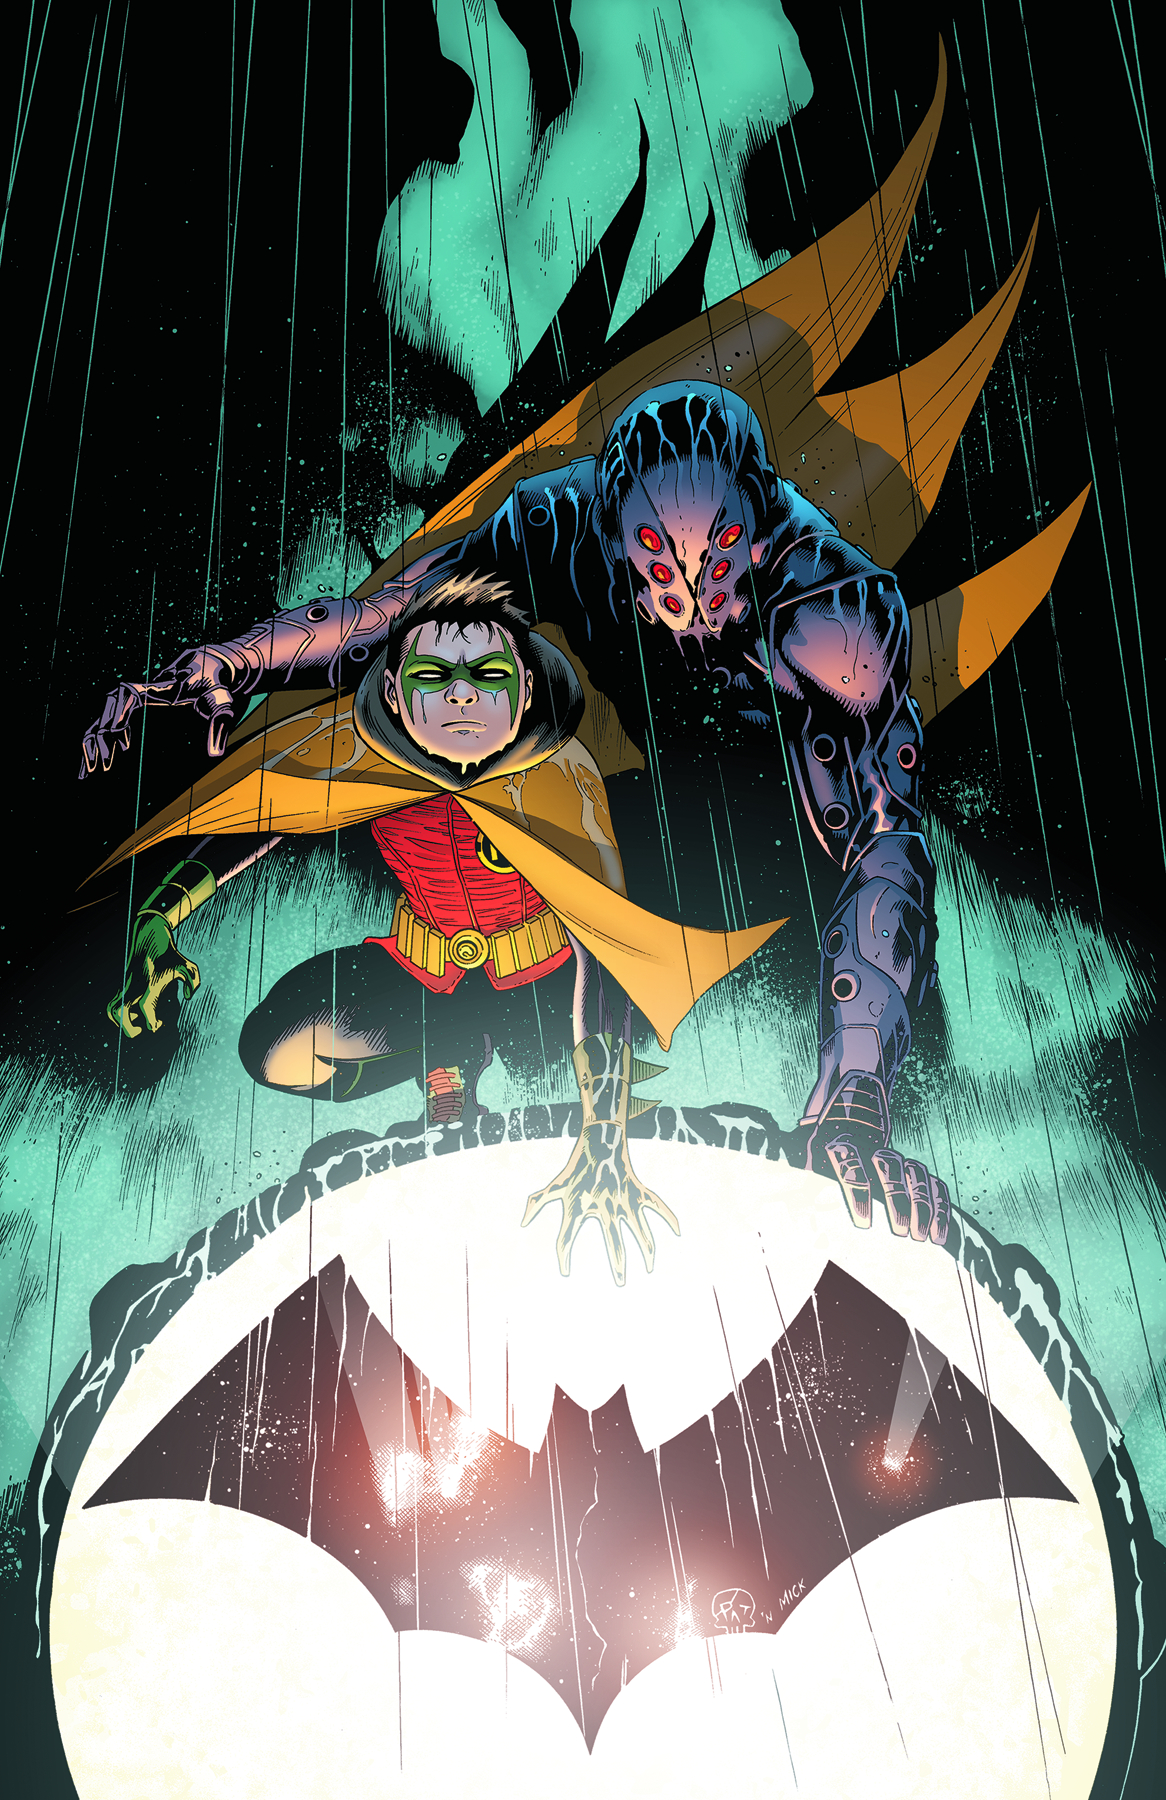 BATMAN AND ROBIN #5